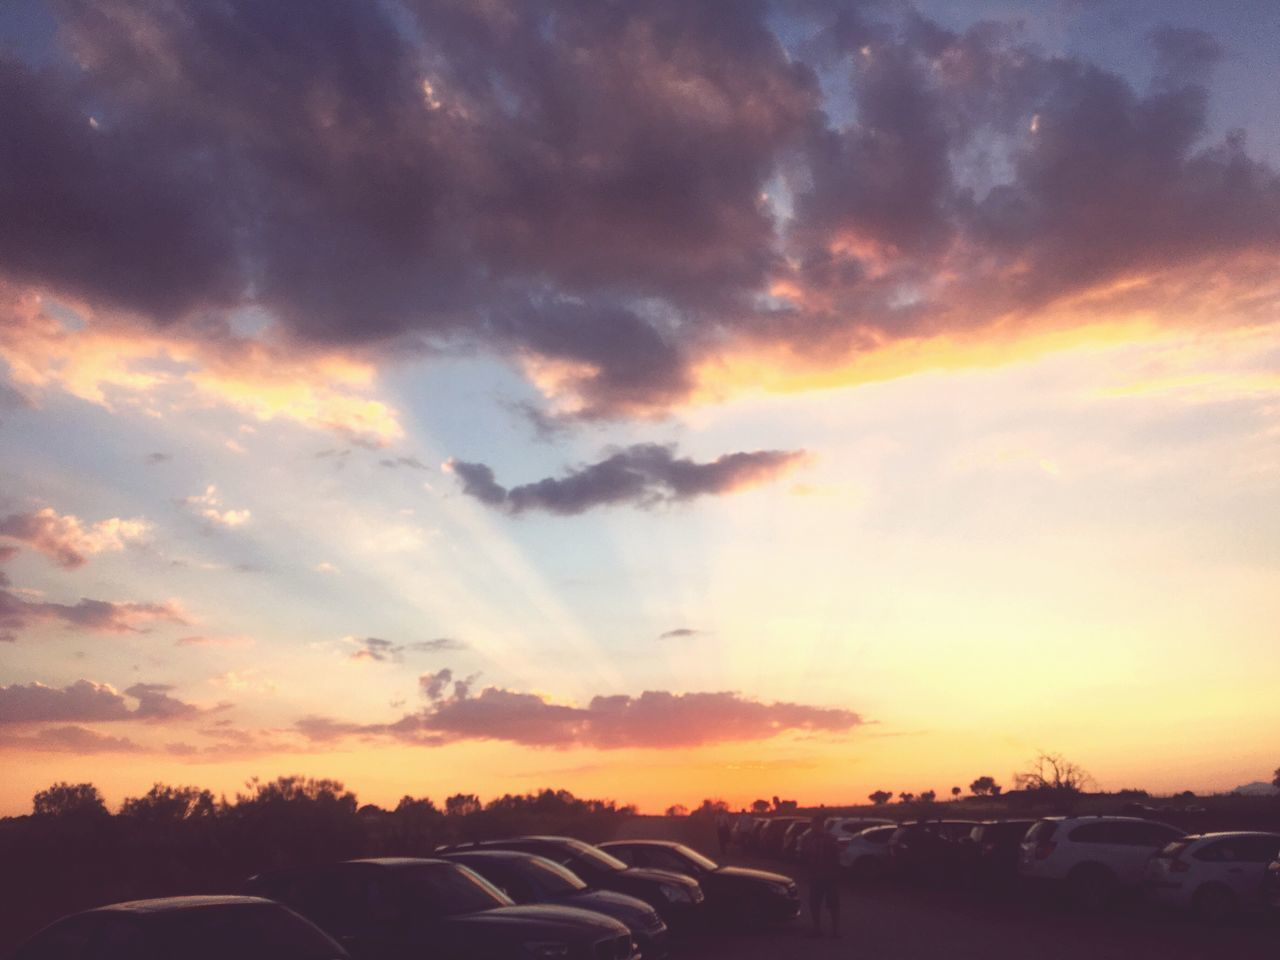 sunset, orange color, cloud - sky, sky, beauty in nature, nature, car, scenics, no people, outdoors, sunlight, tree, day